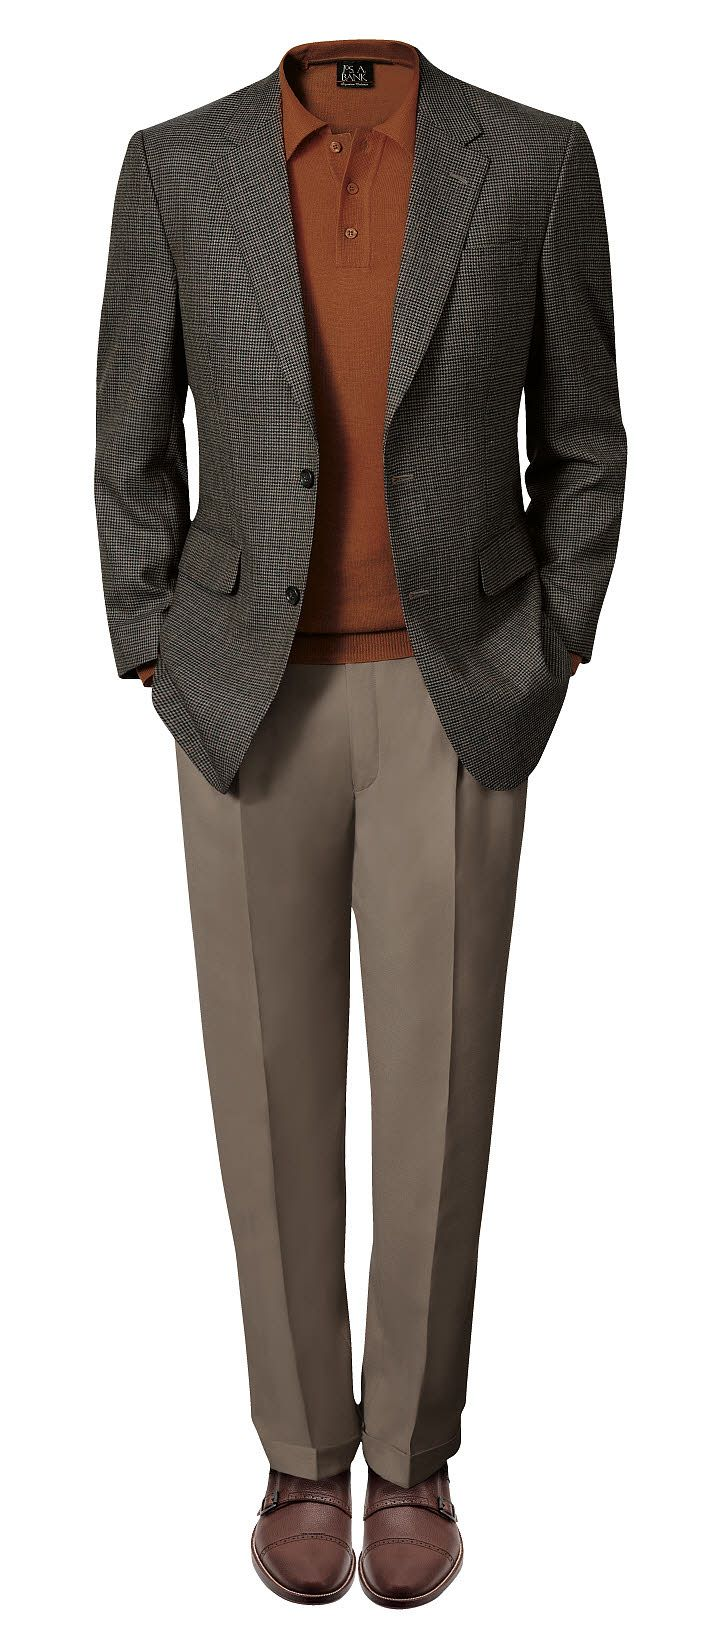 Take your layers up to the next level with this olive microcheck Executive Sportcoat.